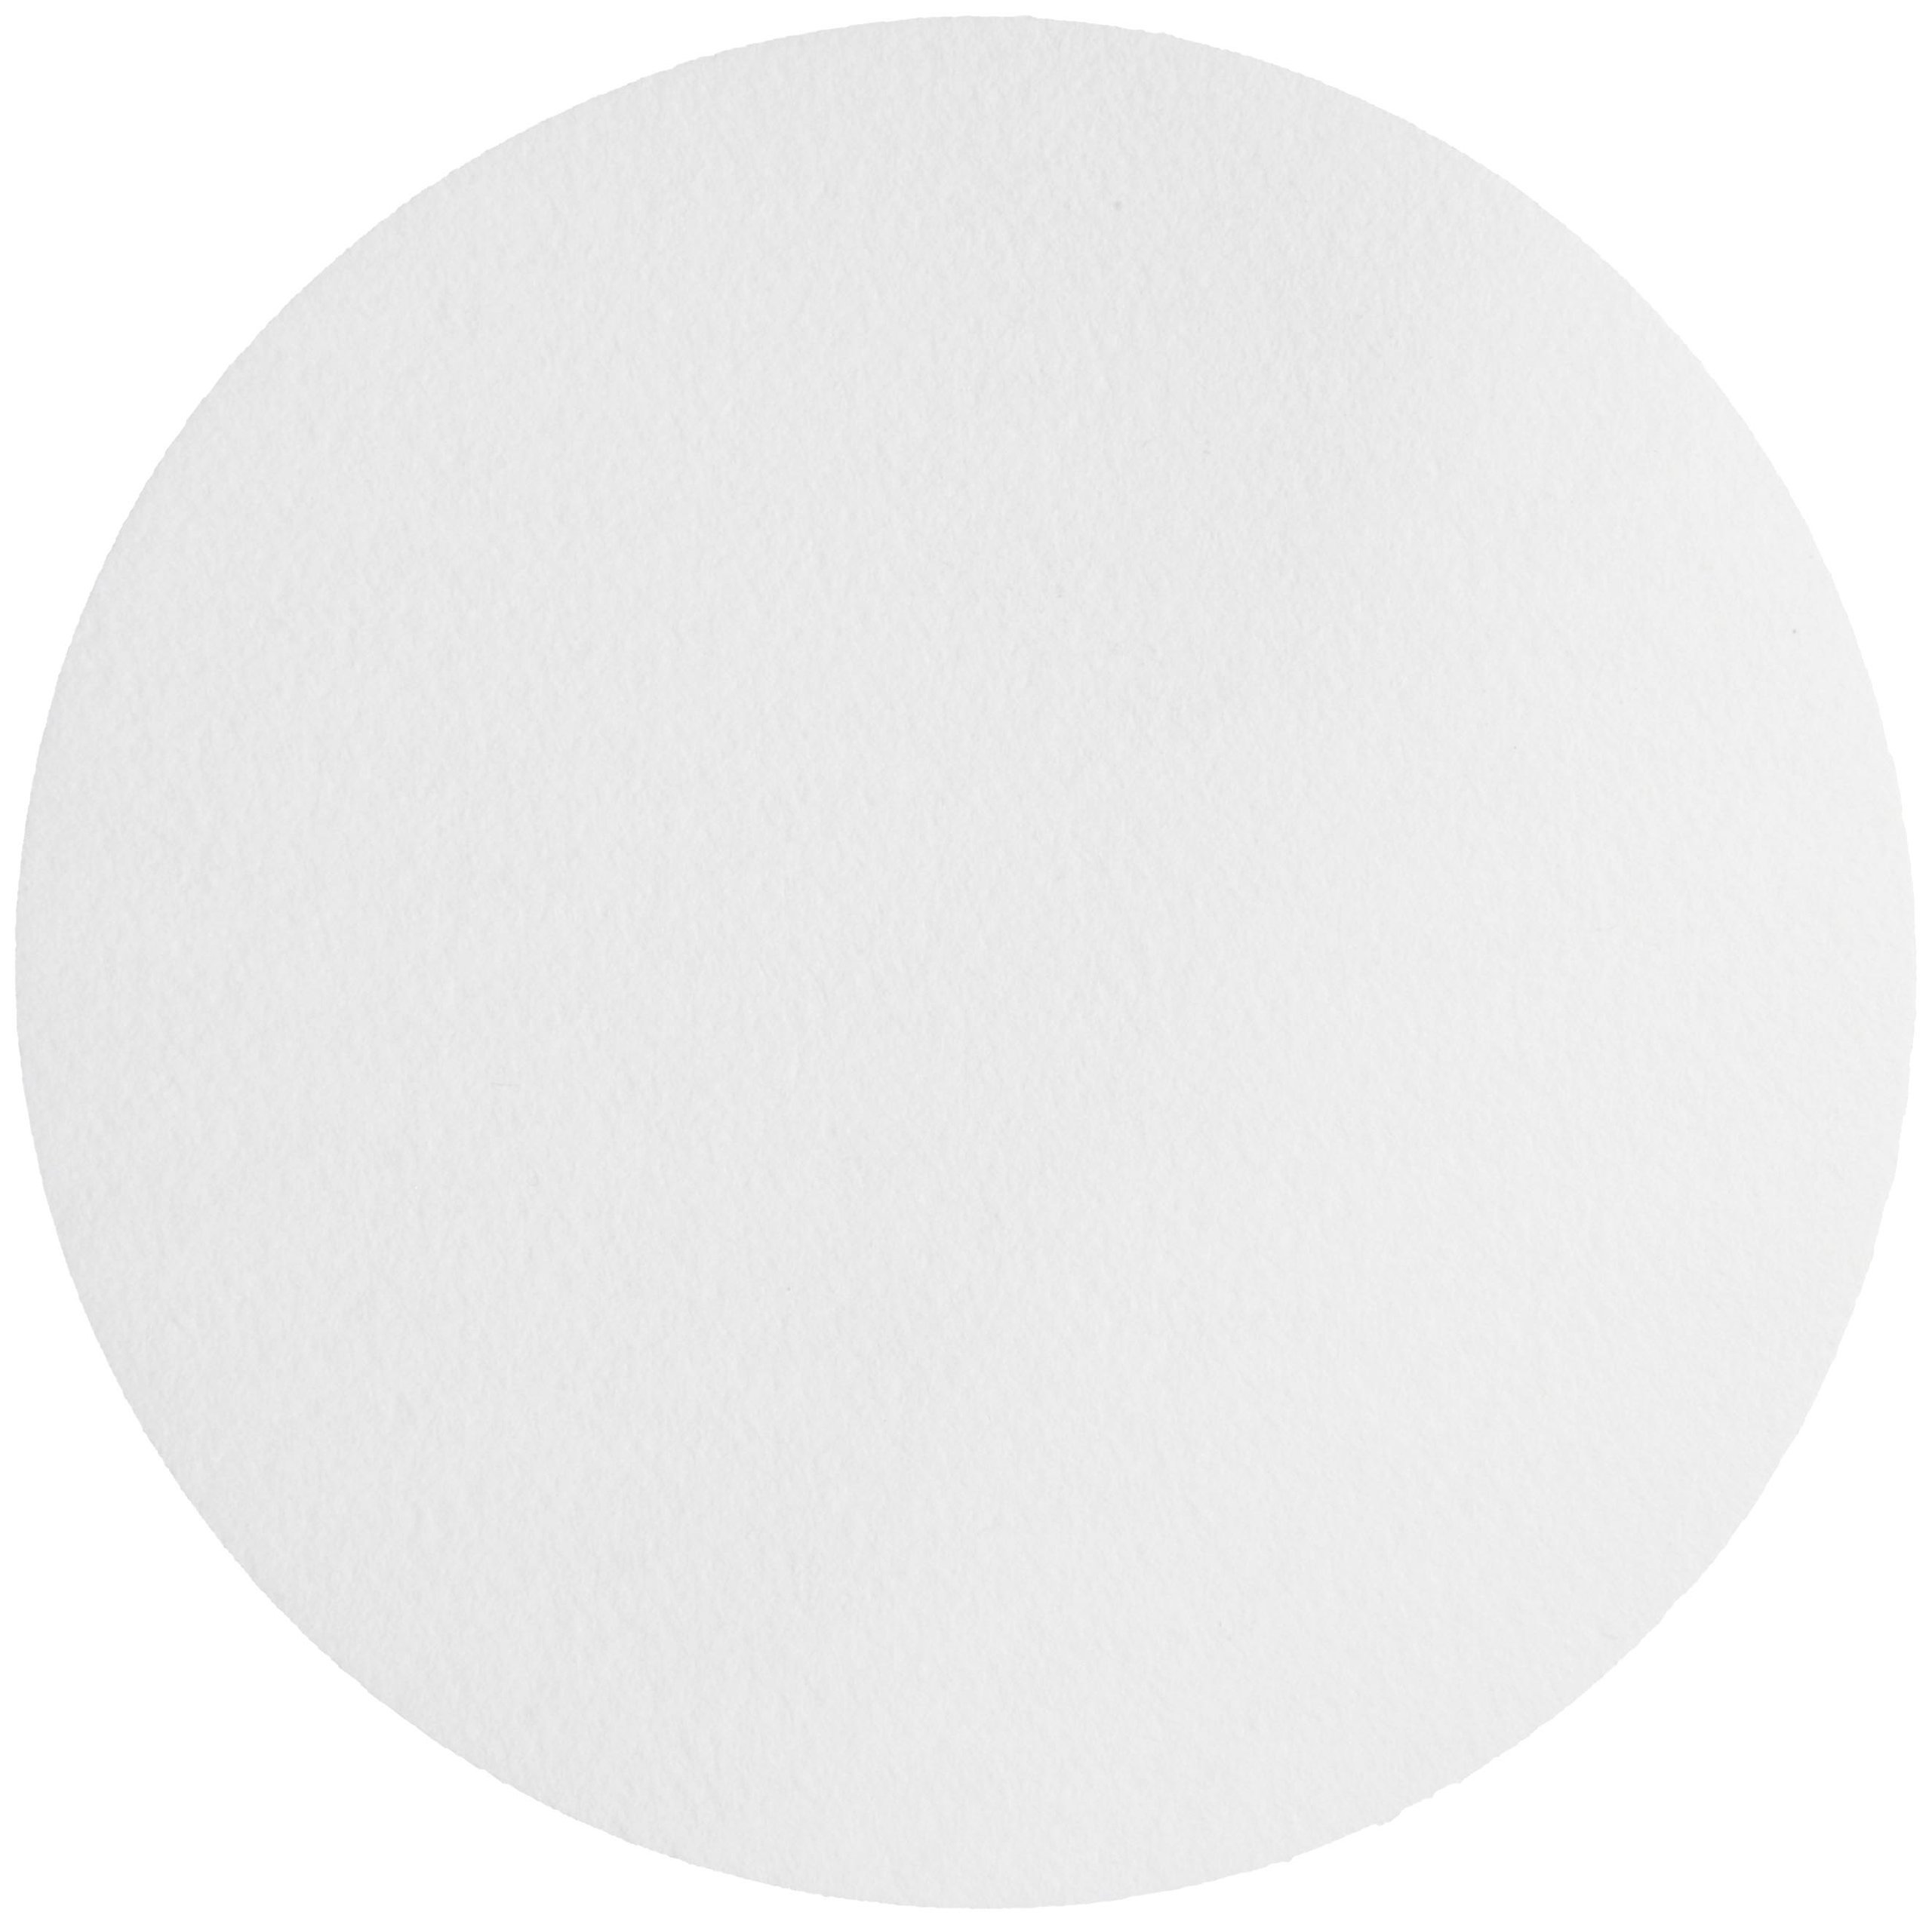 Whatman 1005-325 Quantitative Filter Paper Circles, 2.5 Micron, 94 s/100mL/sq inch Flow Rate, Grade 5, 25mm Diameter (Pack of 100)